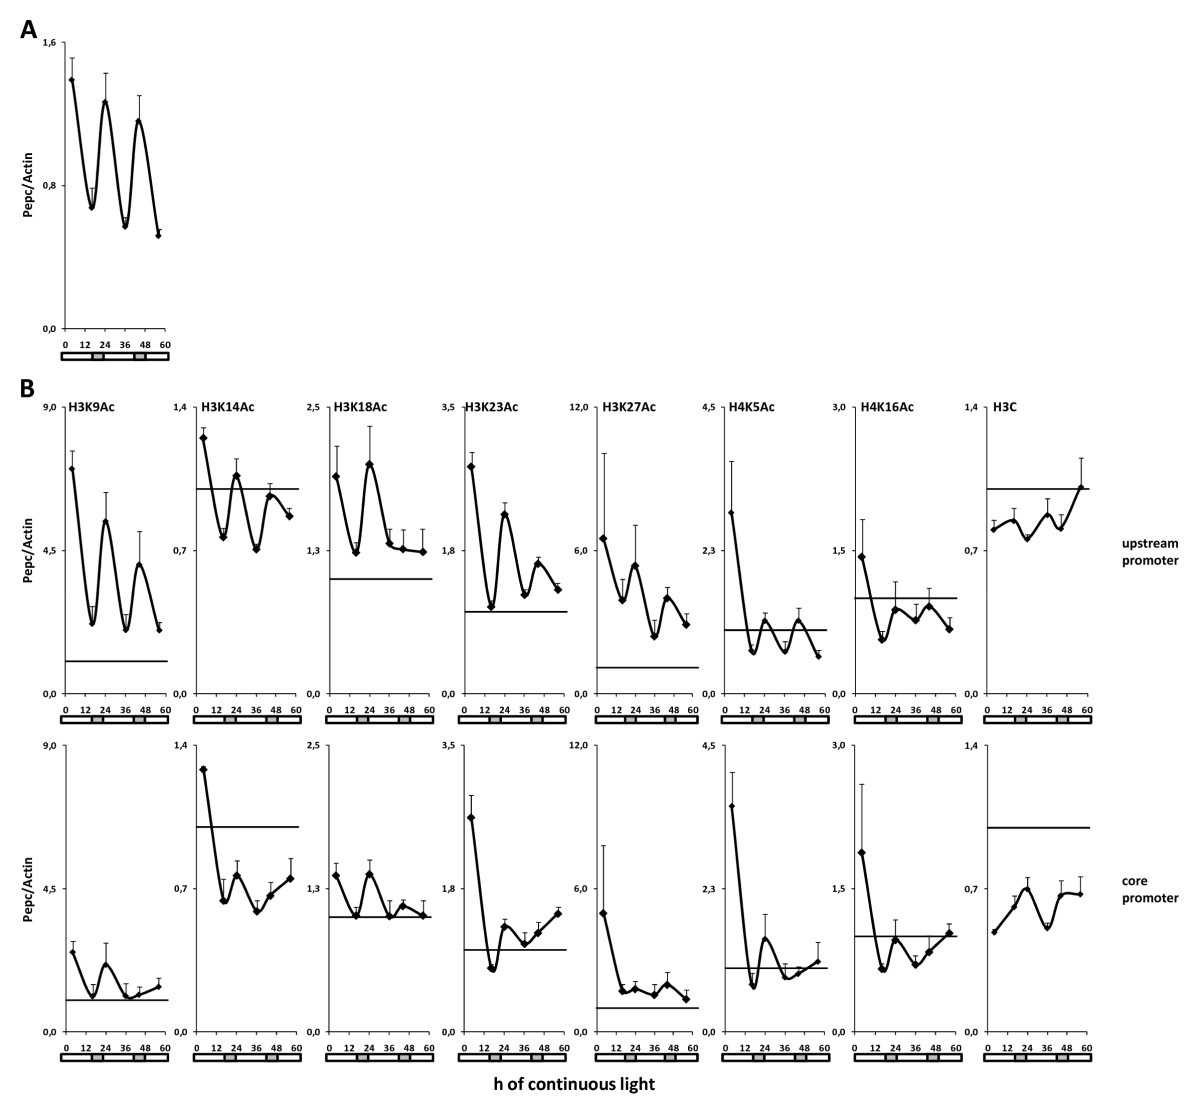 http://static-content.springer.com/image/art%3A10.1186%2F1756-8935-2-17/MediaObjects/13072_2009_Article_27_Fig5_HTML.jpg